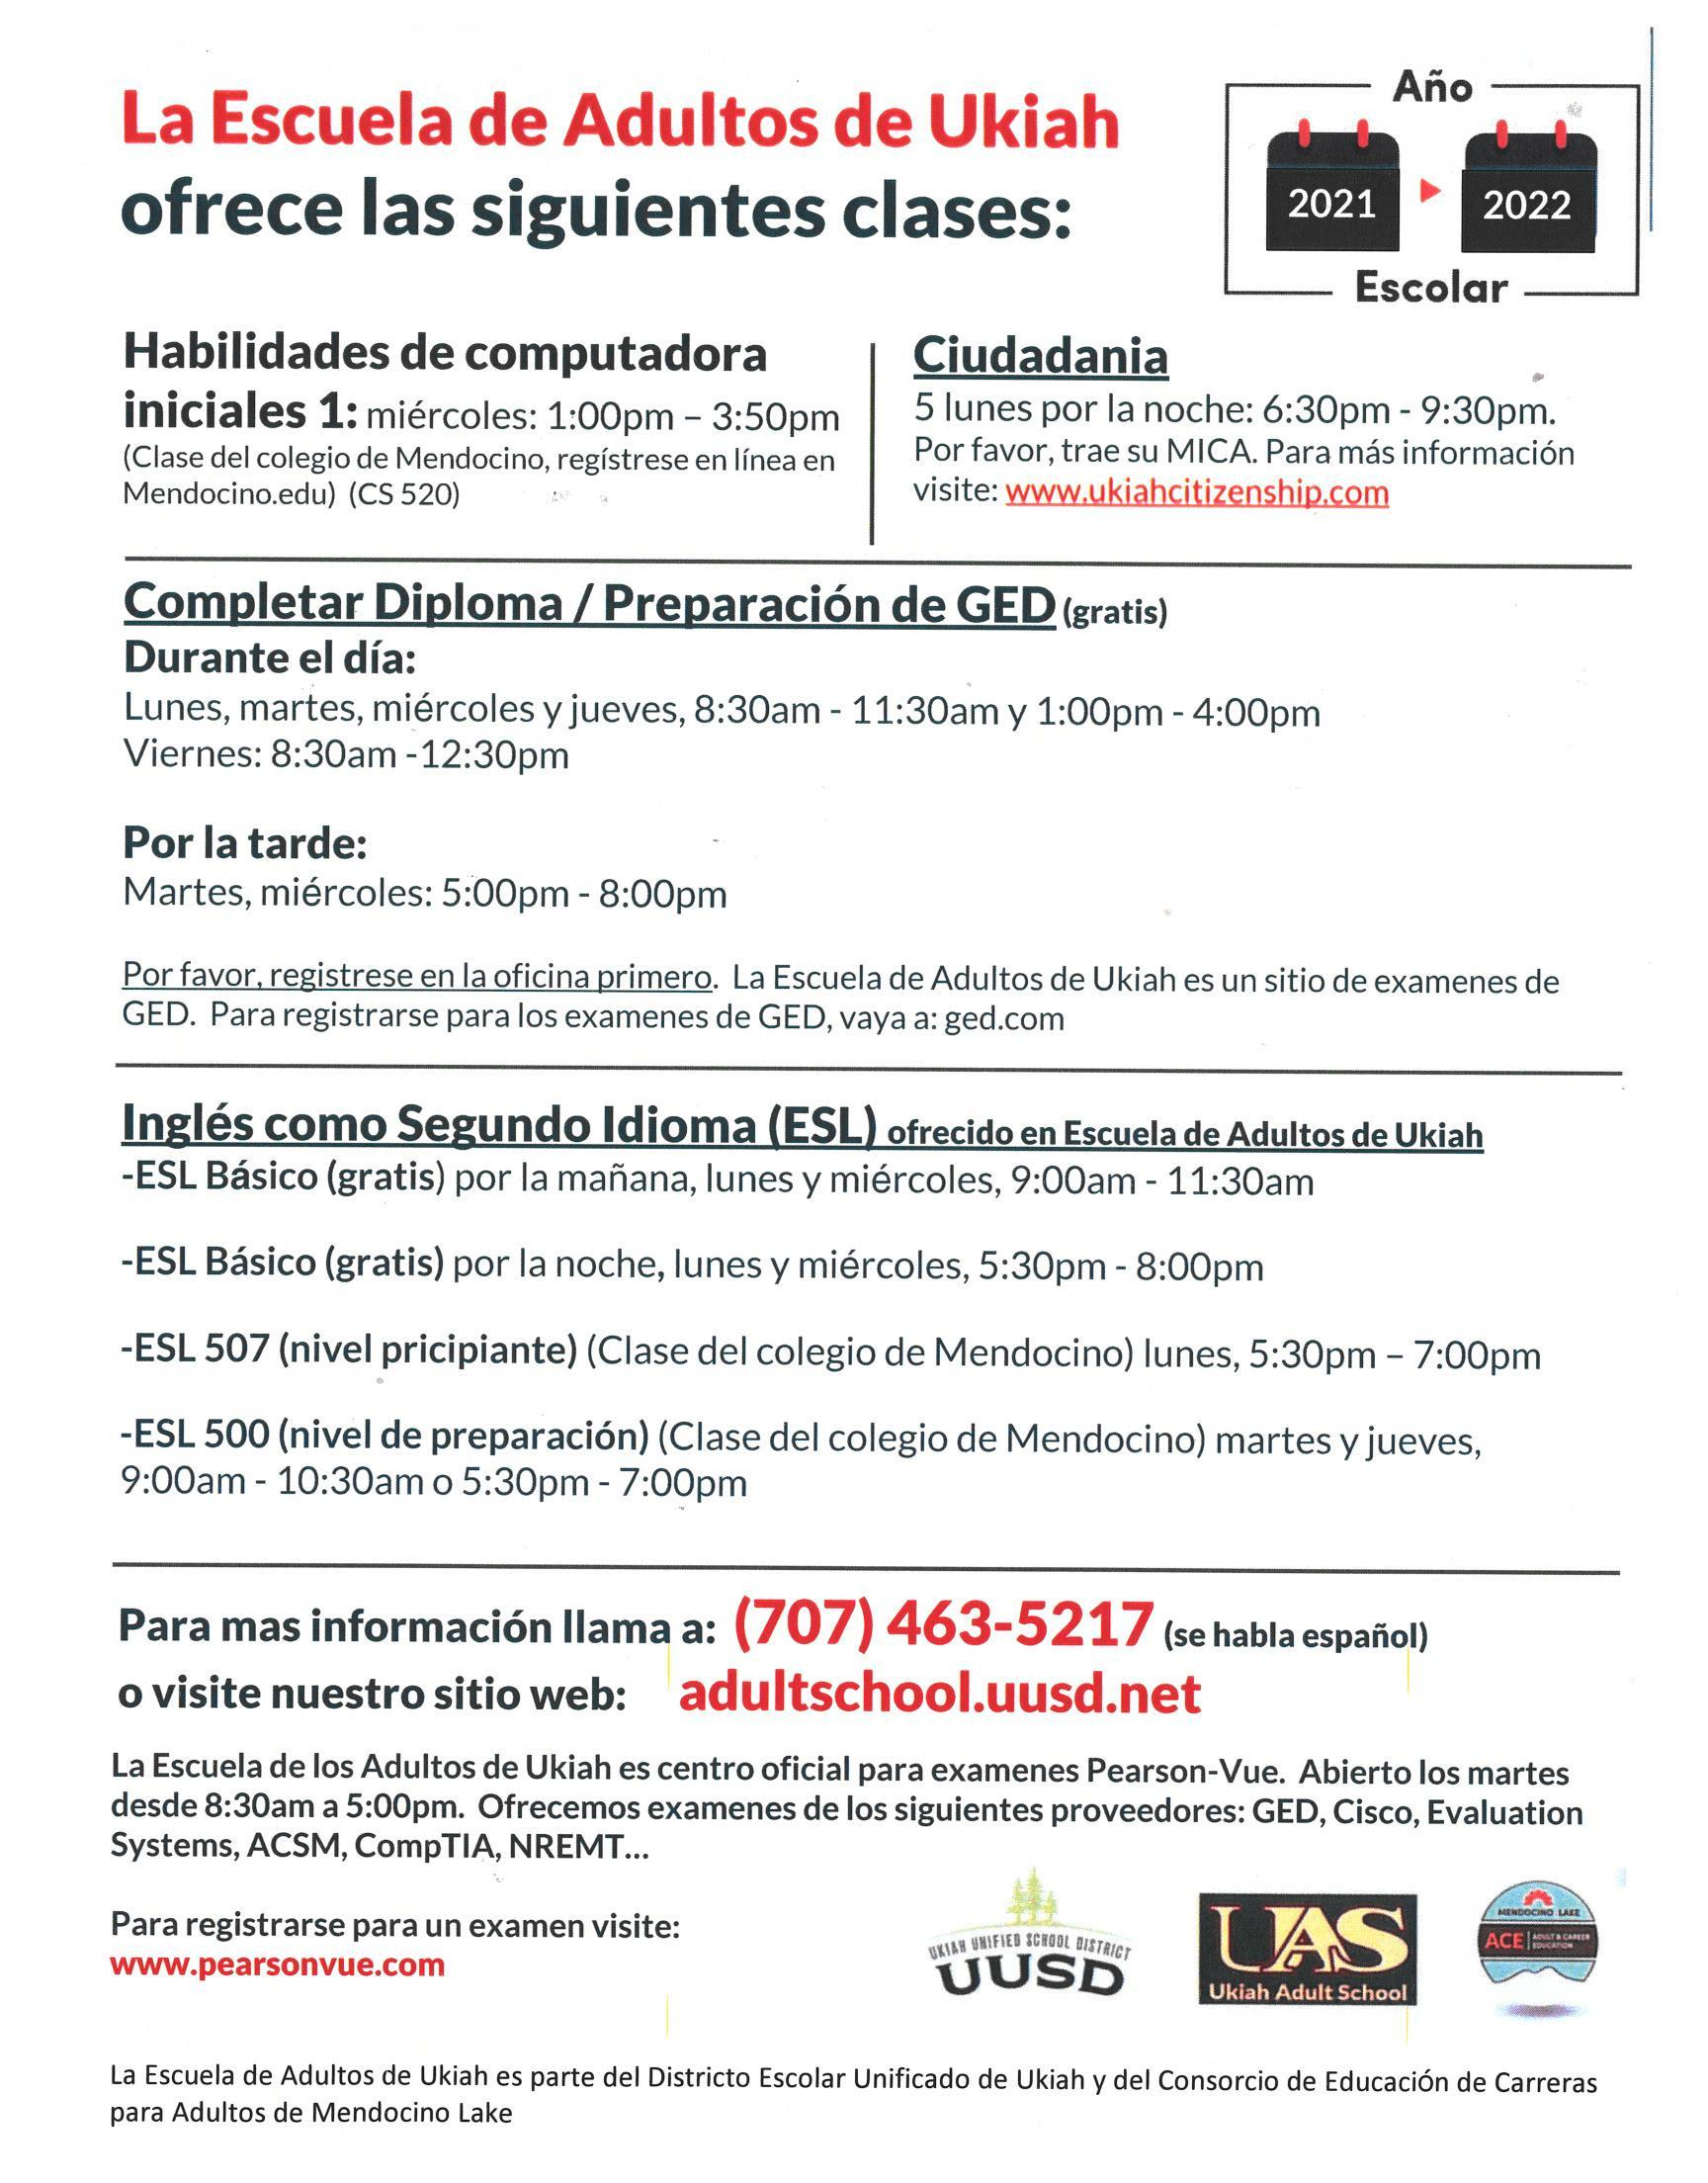 Spanish version of the Fall 2021 UAS Class schedule poster